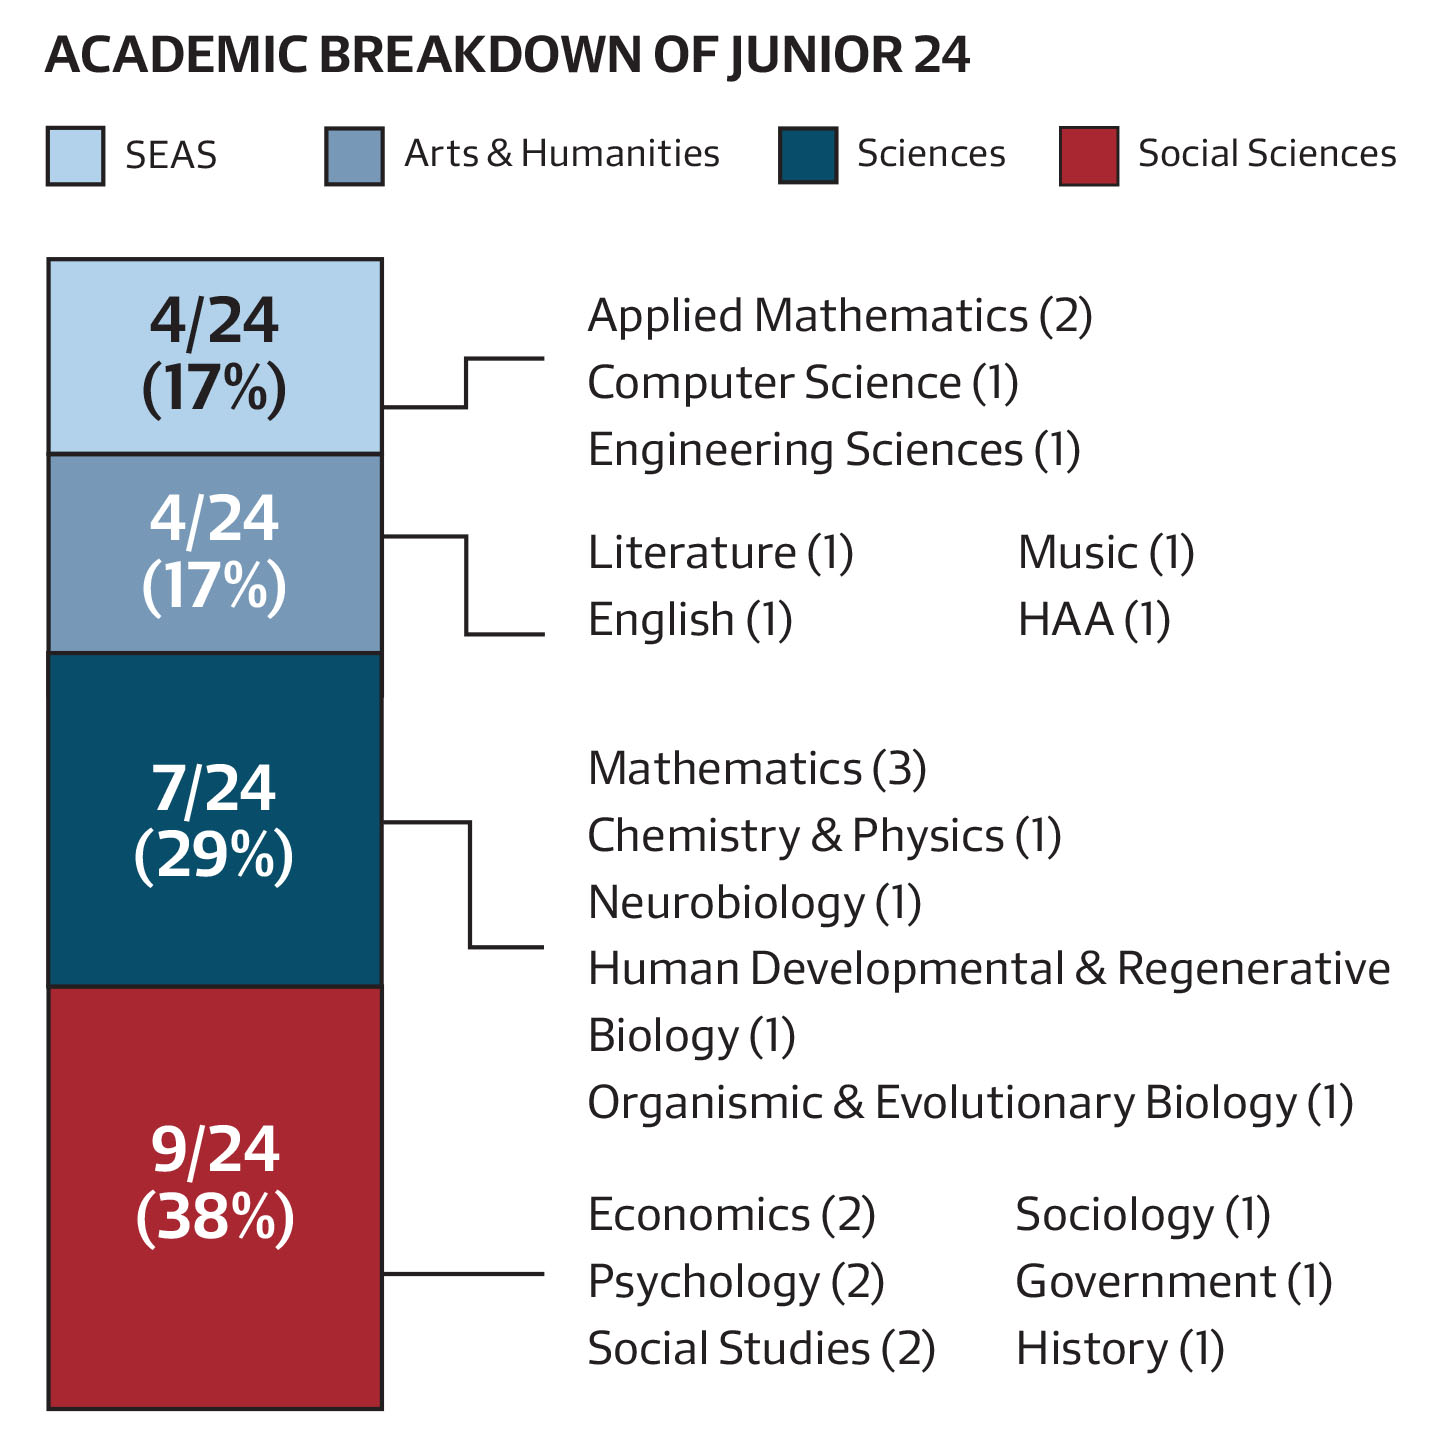 Academic Breakdown of 'Junior 24'